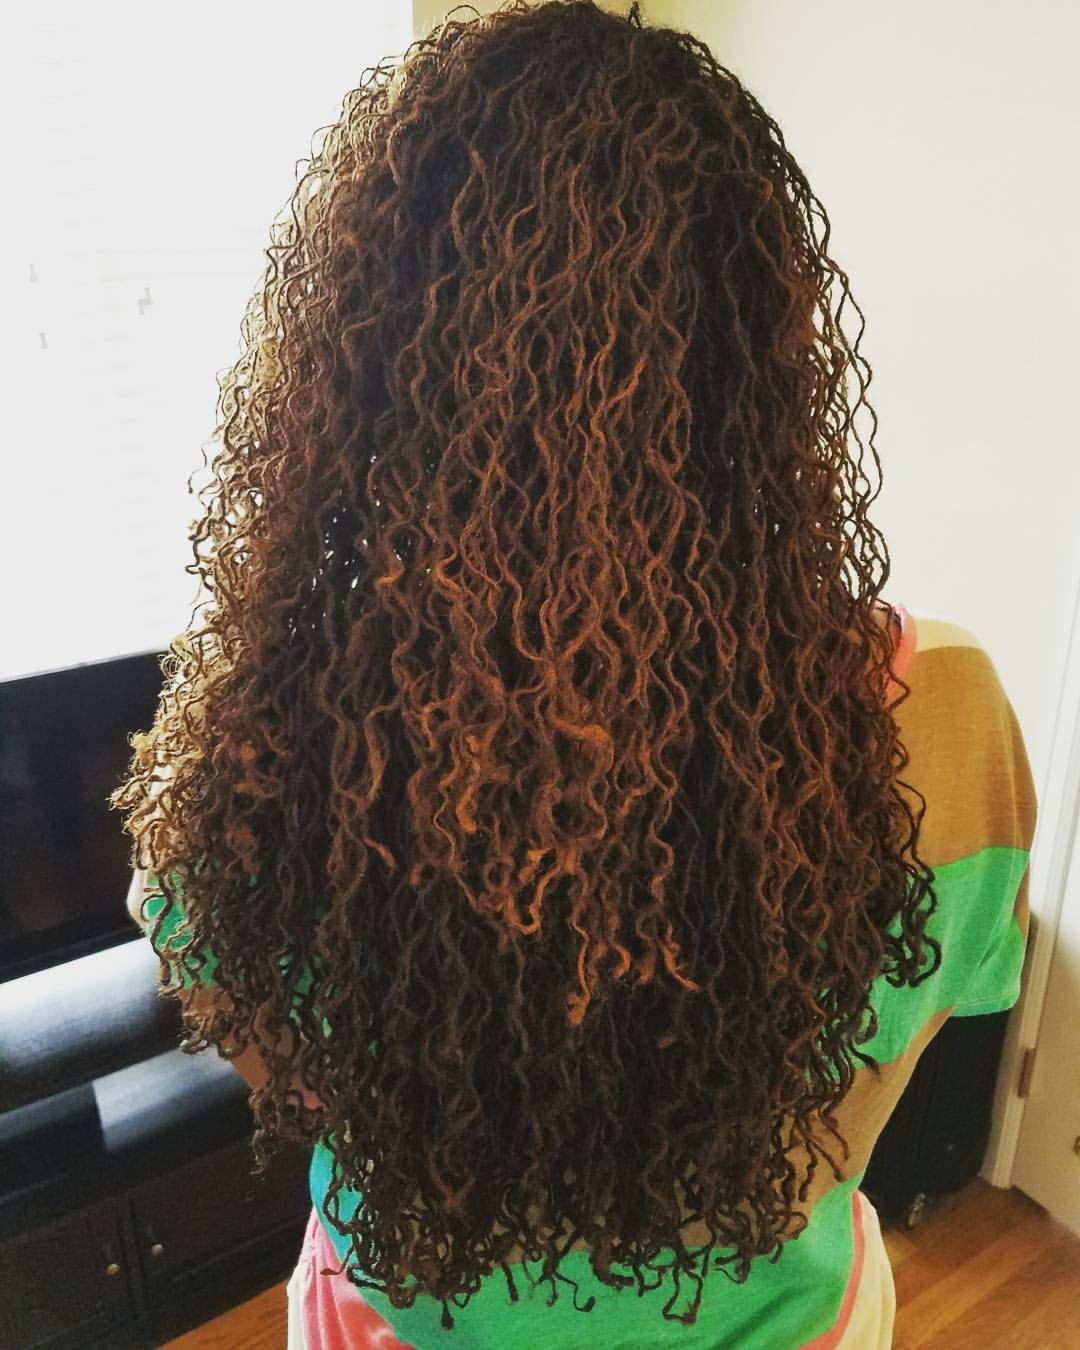 242 Likes 11 Comments Tammy Brown Imlovelocd On Instagram My Rockstar Consultant Client Friend Her 9 Year Natural Hair Styles Sisterlocks Hair Styles